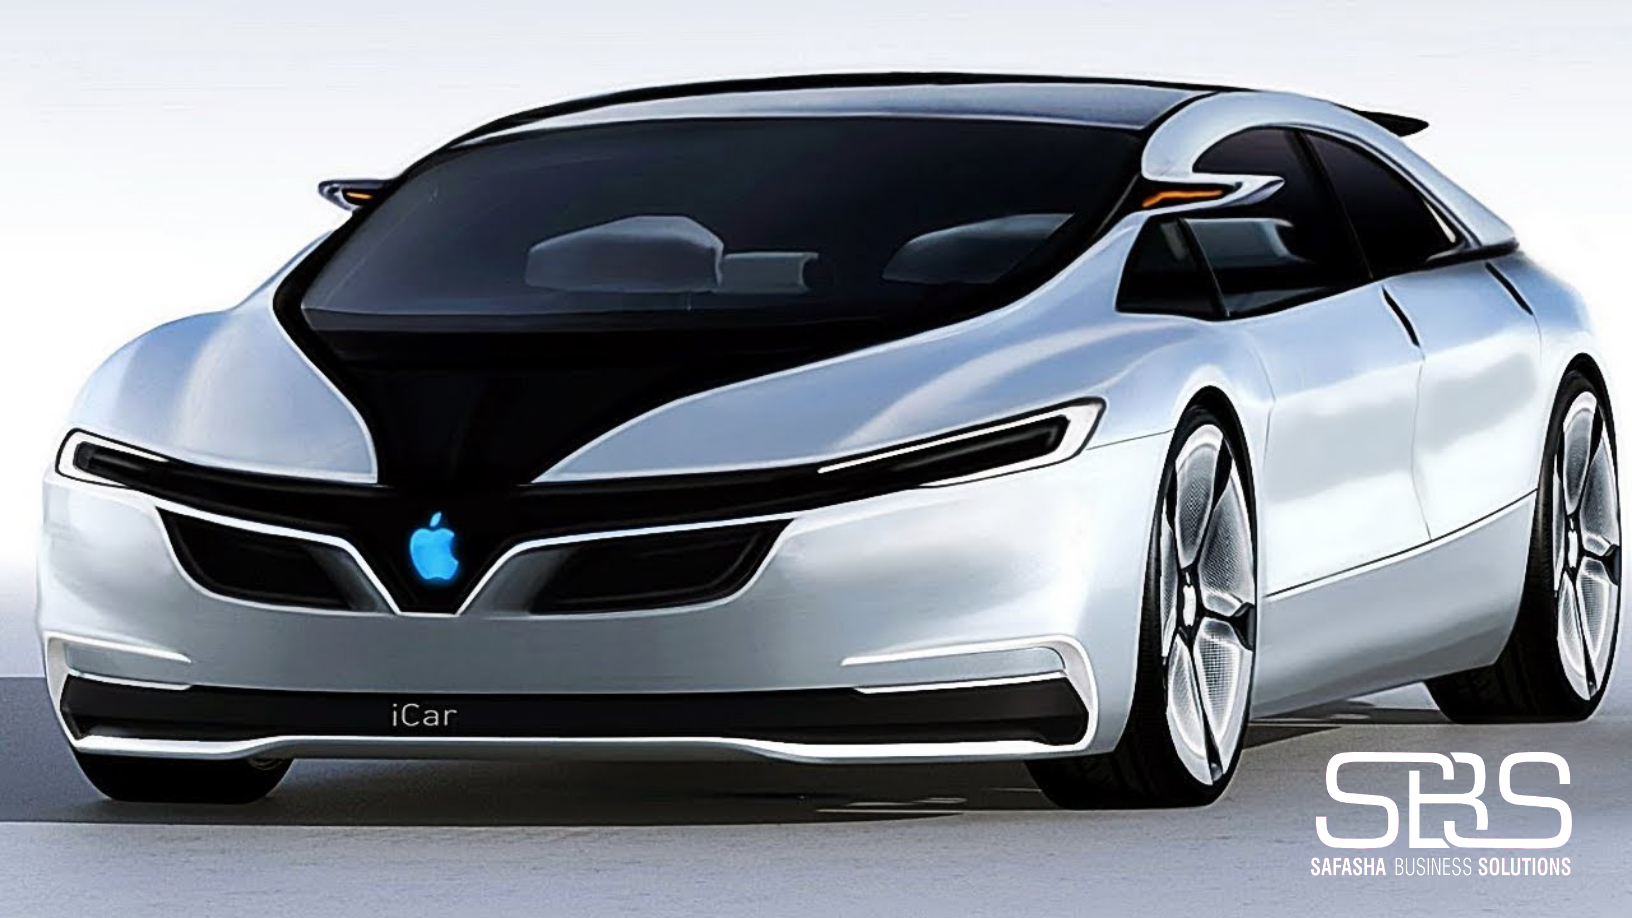 Is Apple Car Going to Compete Tesla with Next Level Battery Tech?